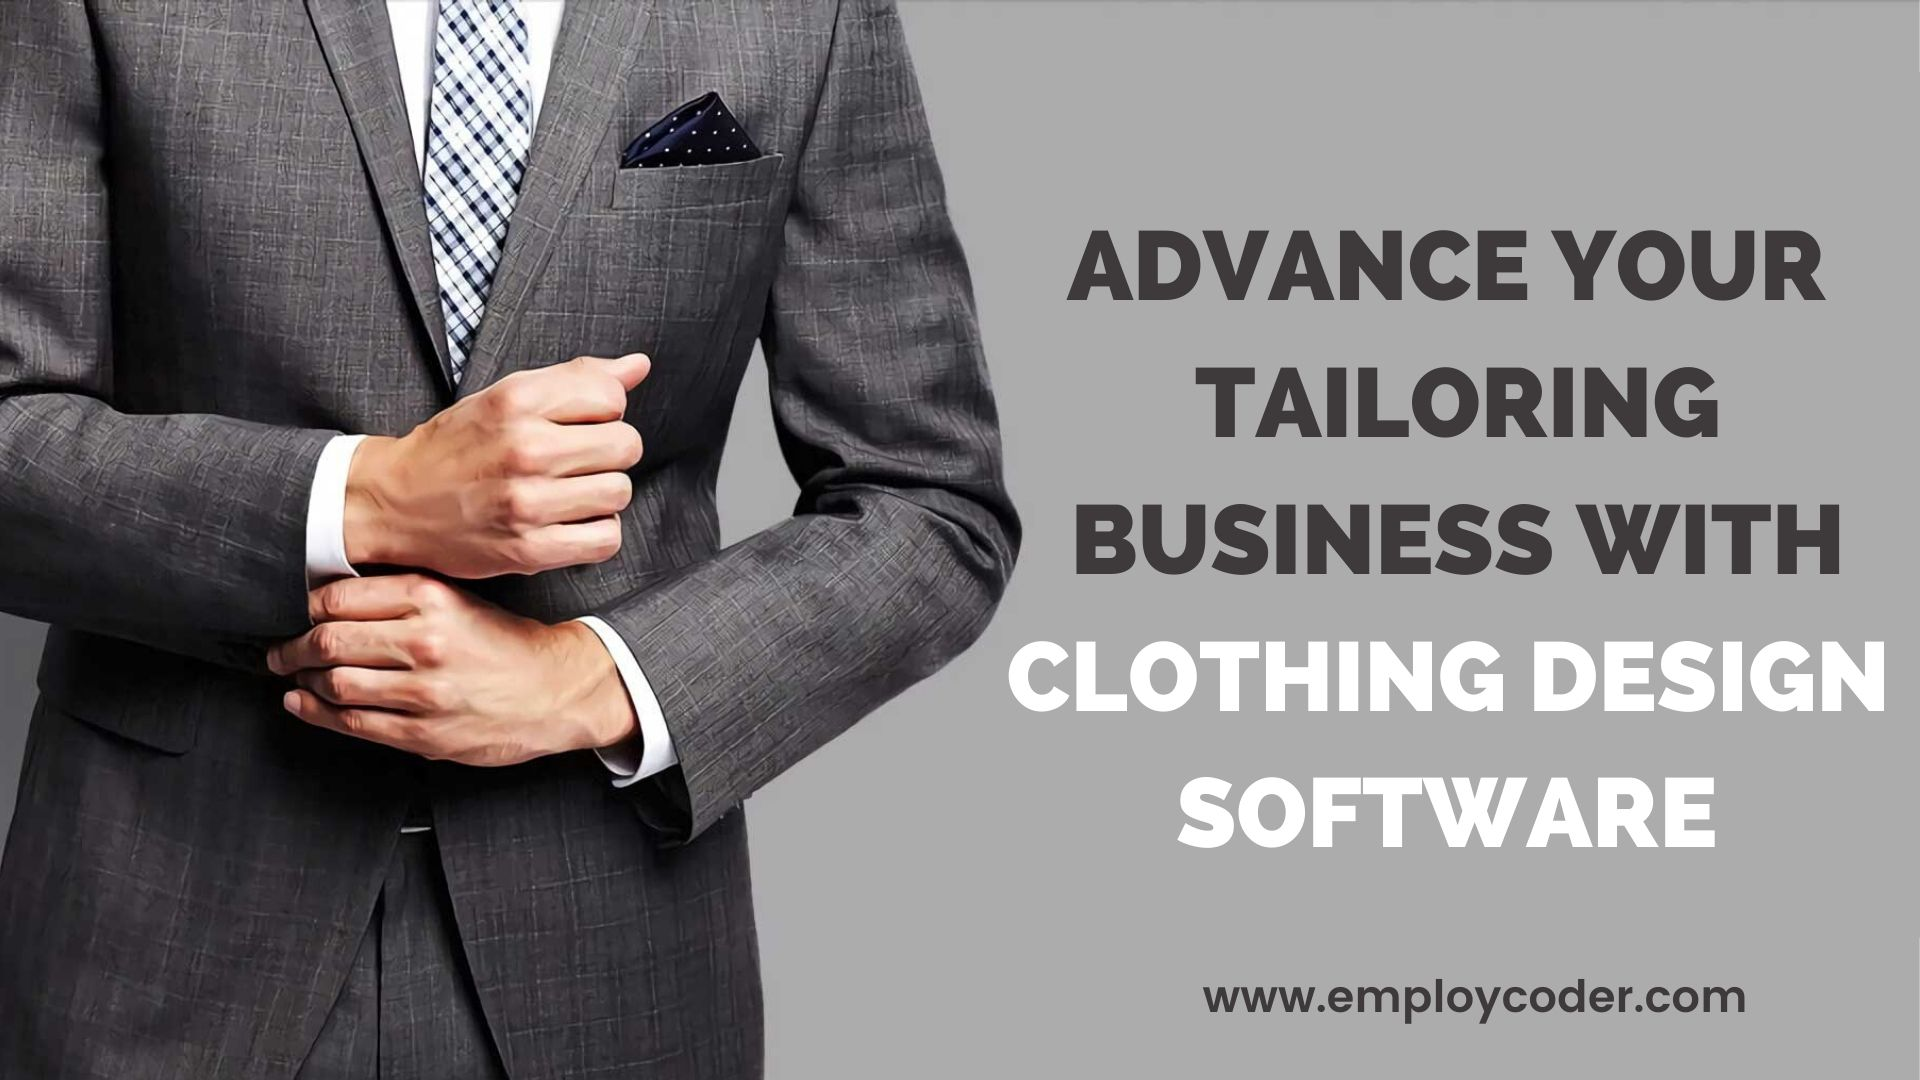 Advance your Tailoring Business with Clothing Design Software